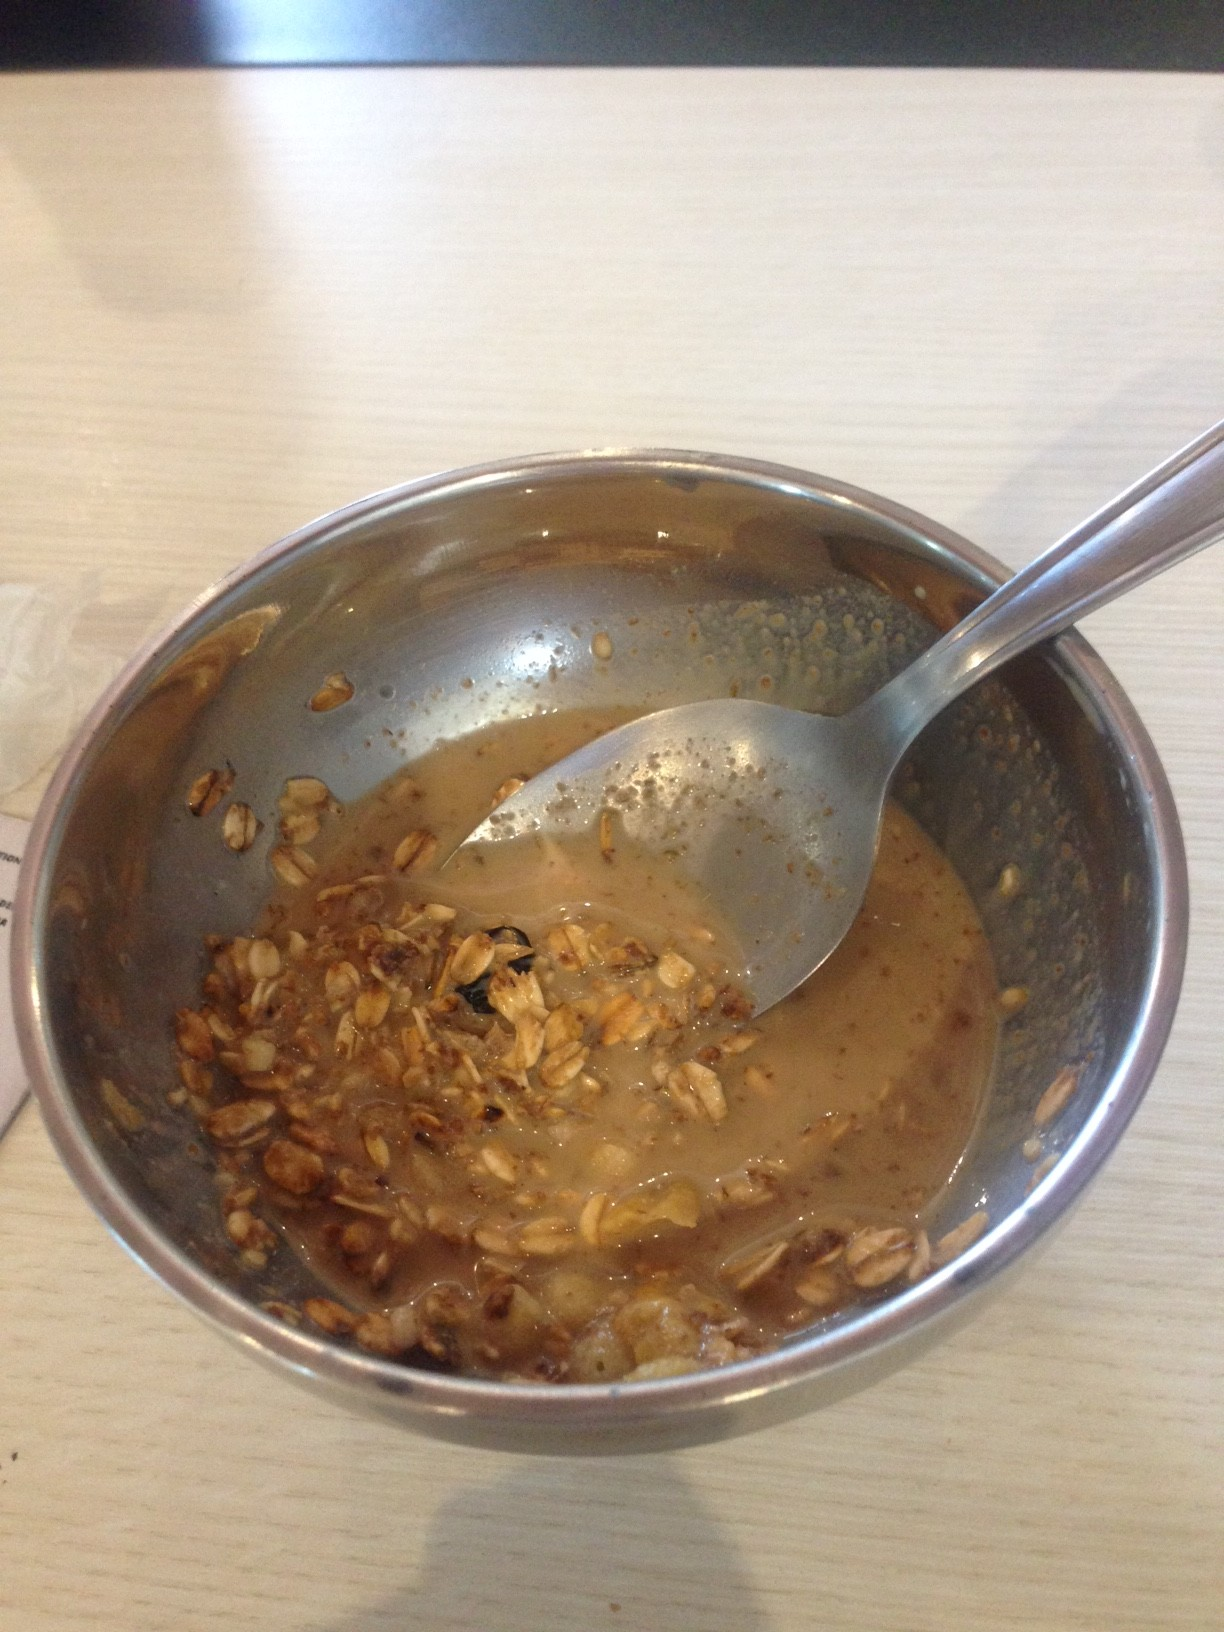 Granola cereal (which doesn't look that great, but was incredible!) as breakfast, as well as various fruits, cake, coffee/tea and toast